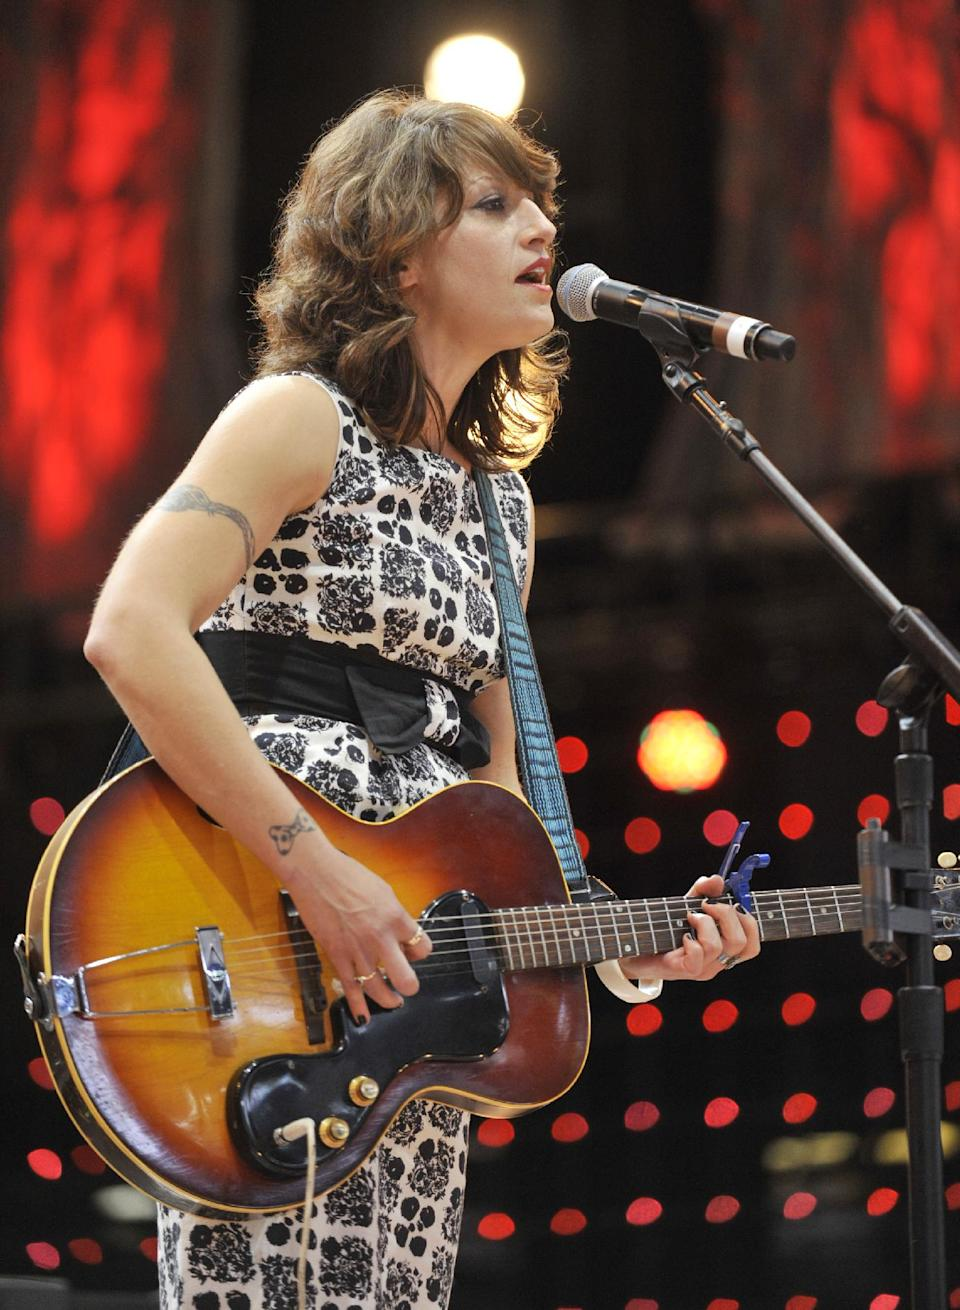 Sasha Dobson performs with her band during the Farm Aid 2013 concert at Saratoga Performing Arts Center in Saratoga Springs, N.Y., Saturday, Sept. 21, 2013. (AP Photo/Hans Pennink)